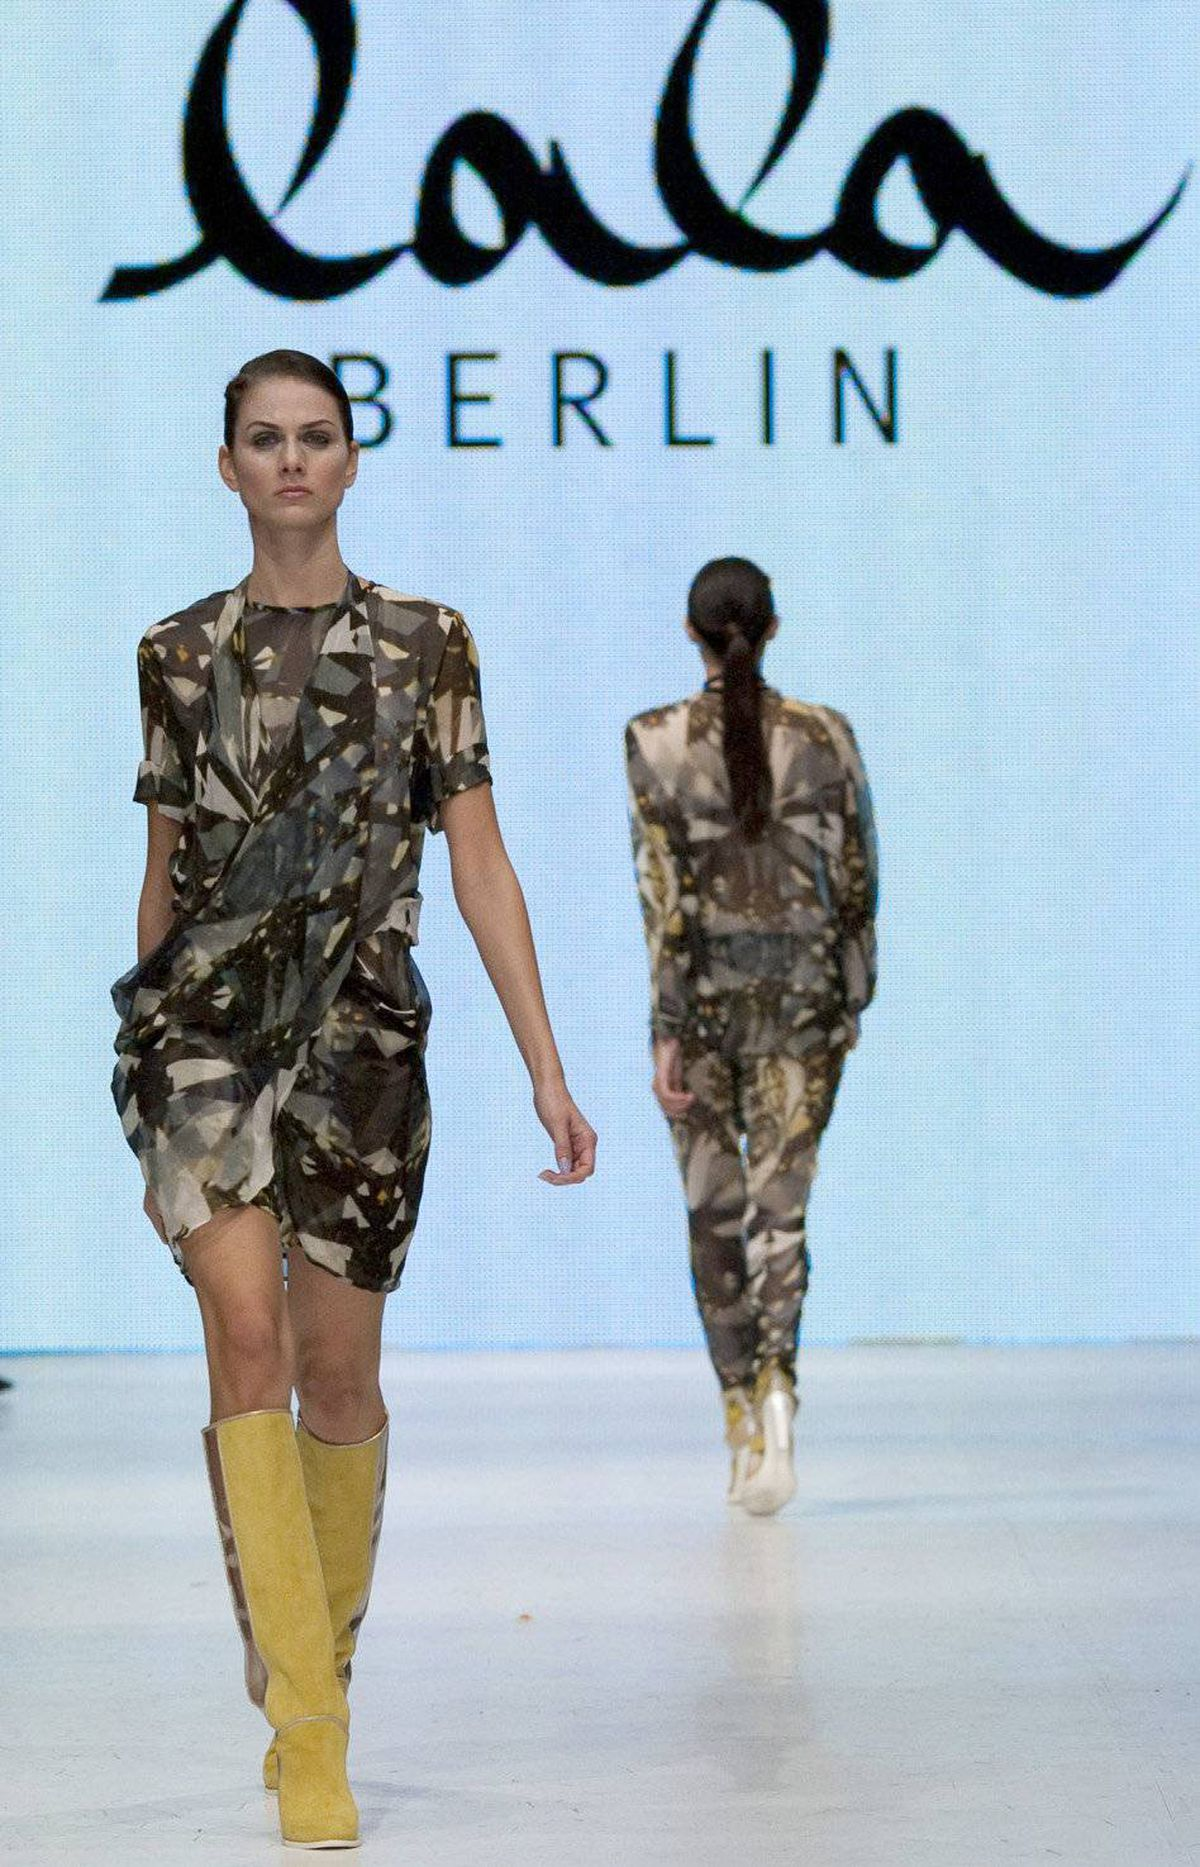 Berlin's focus veered from classically feminine looks to sharp lines and a darker palette of army greens, sheer browns and muted camouflage print. As the show - and the first night of Fashion Week - drew to a close, saturation was slowly stripped altogether and the models left the runway in black on black.